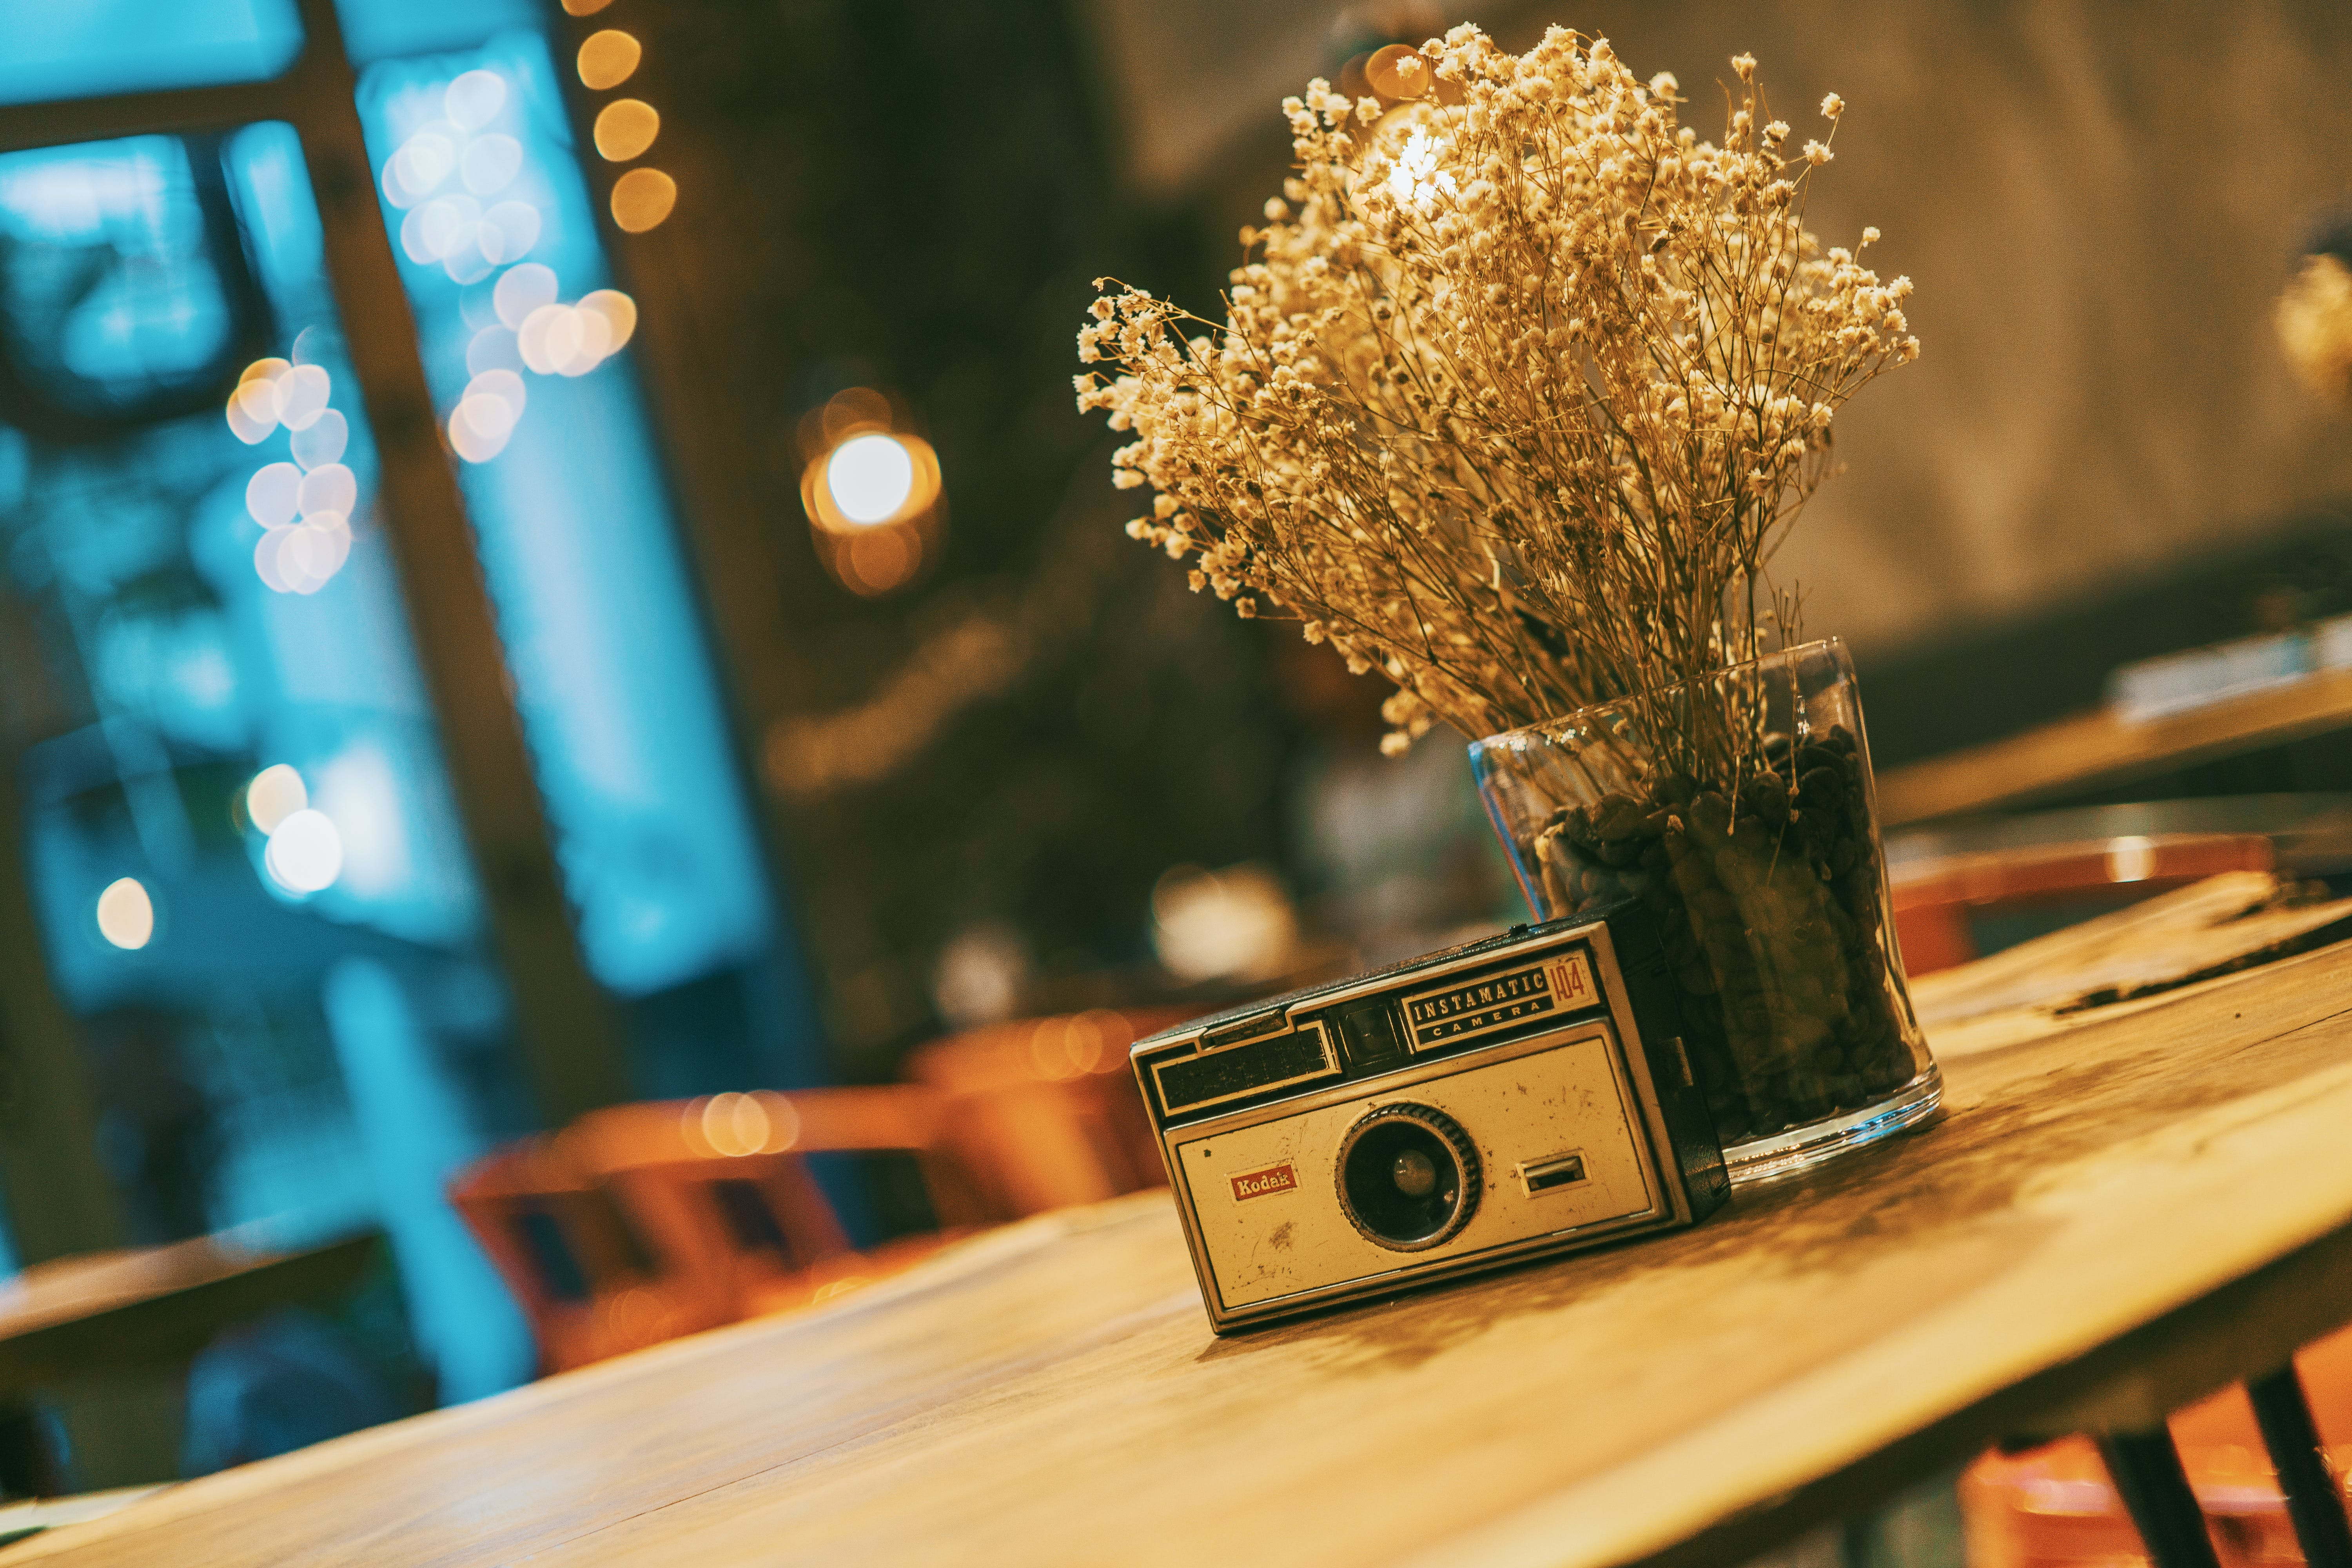 Gray and Black Slr Camera Near Clear Glass Vase